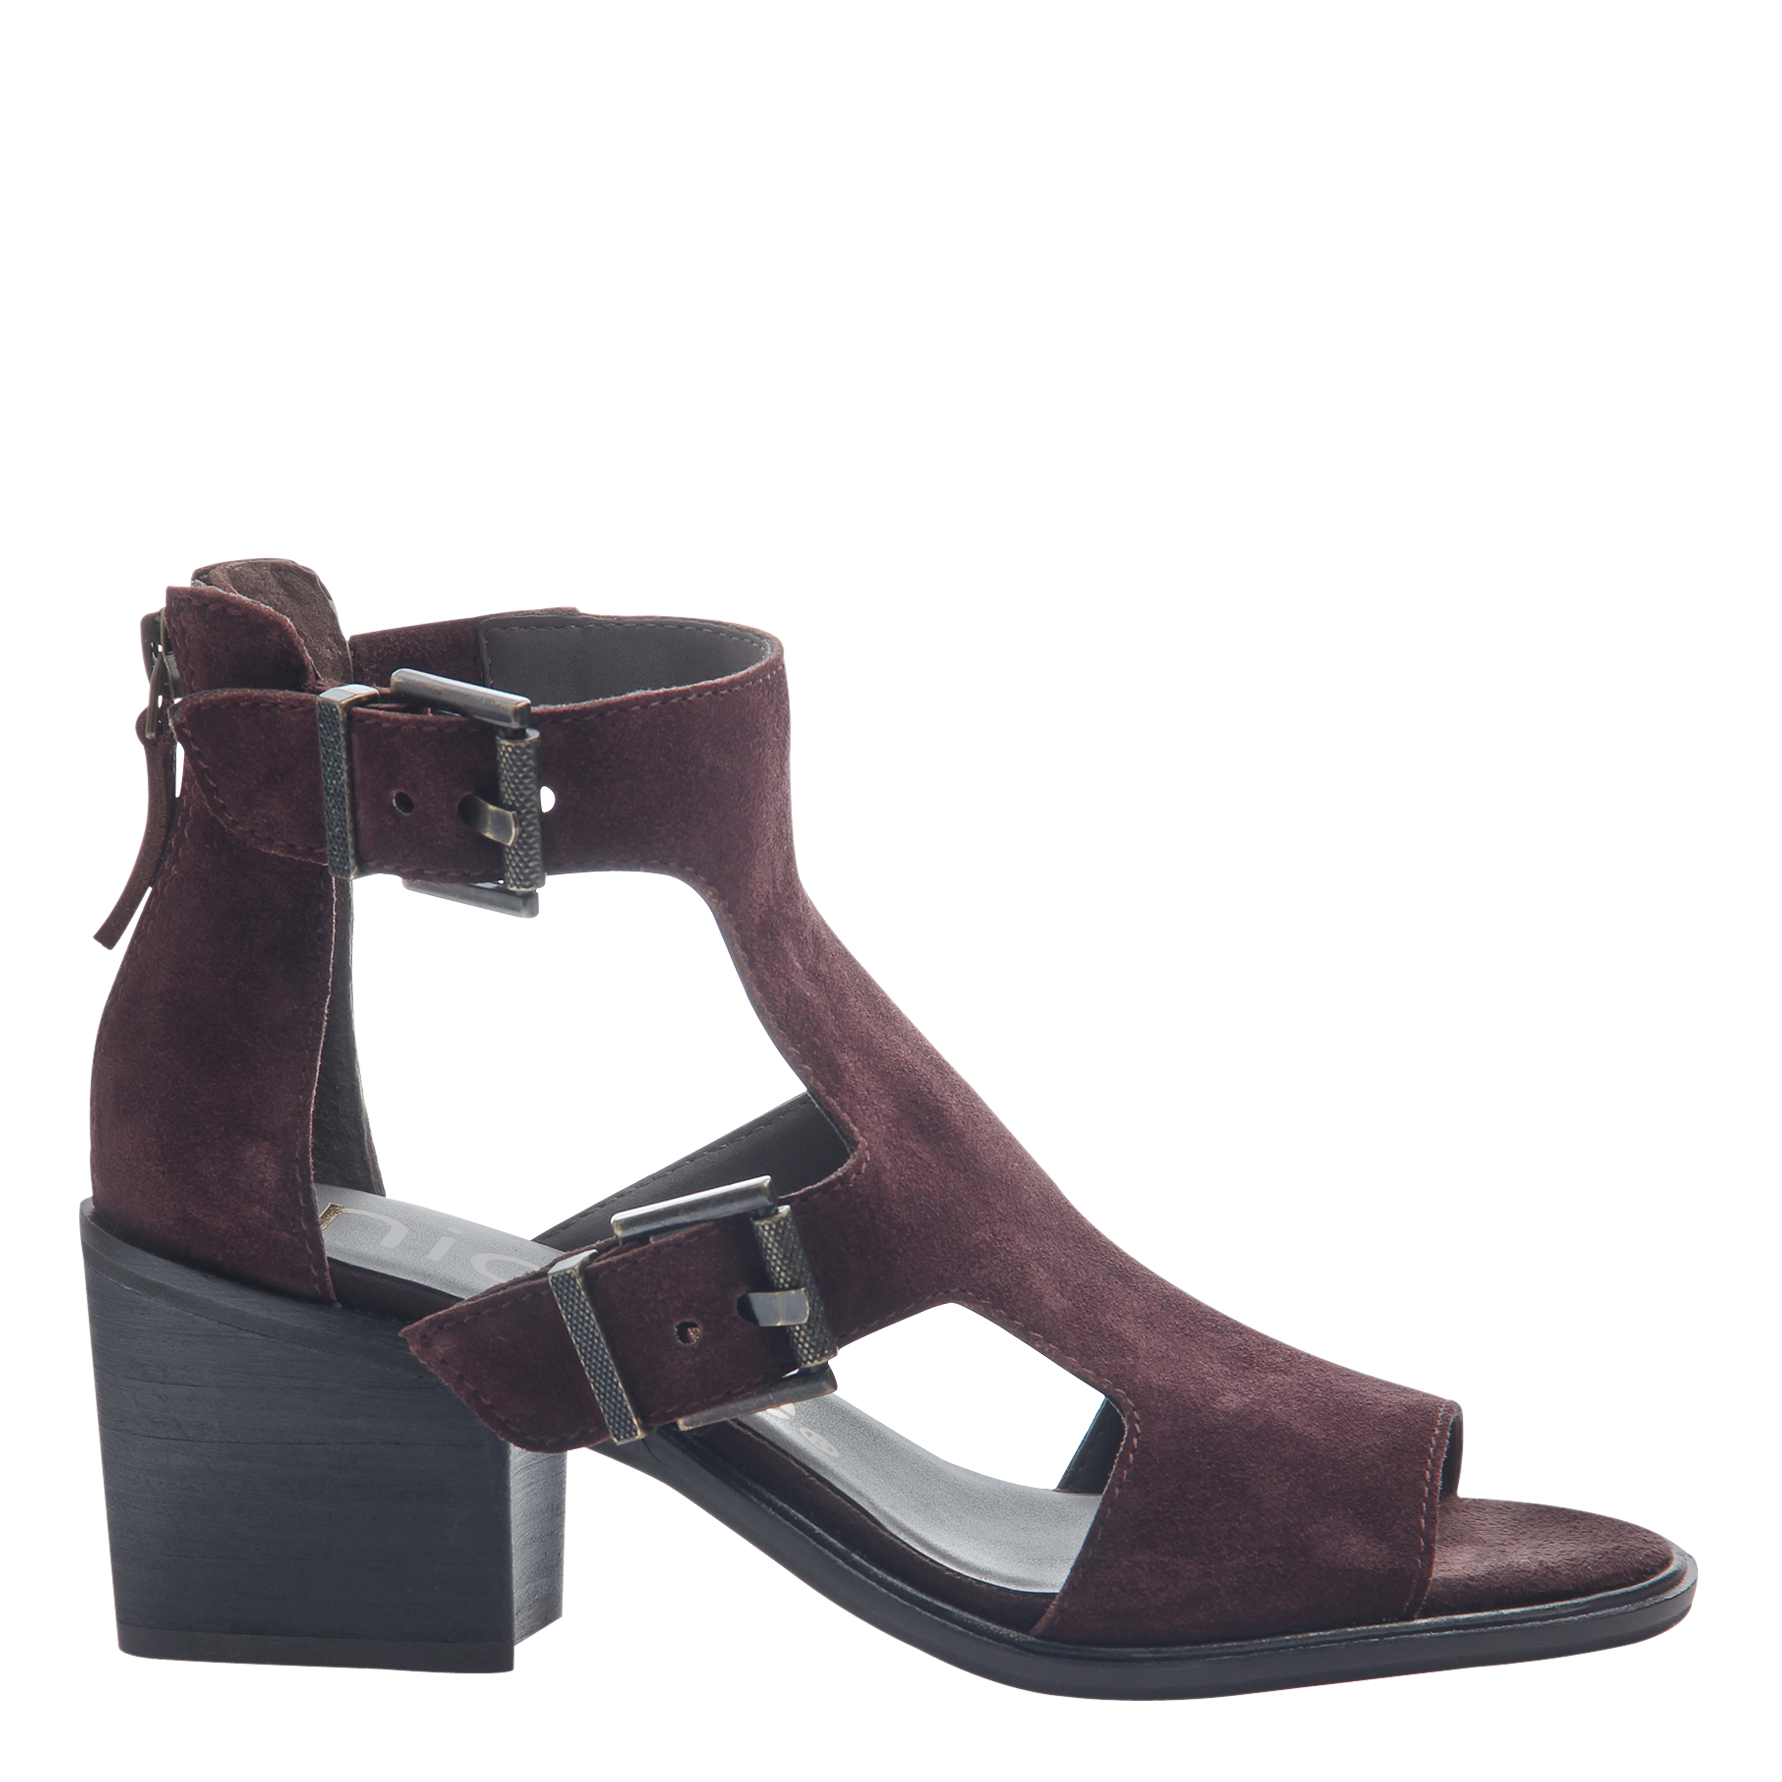 Womens heeled sandals Jahida in burgundy side view